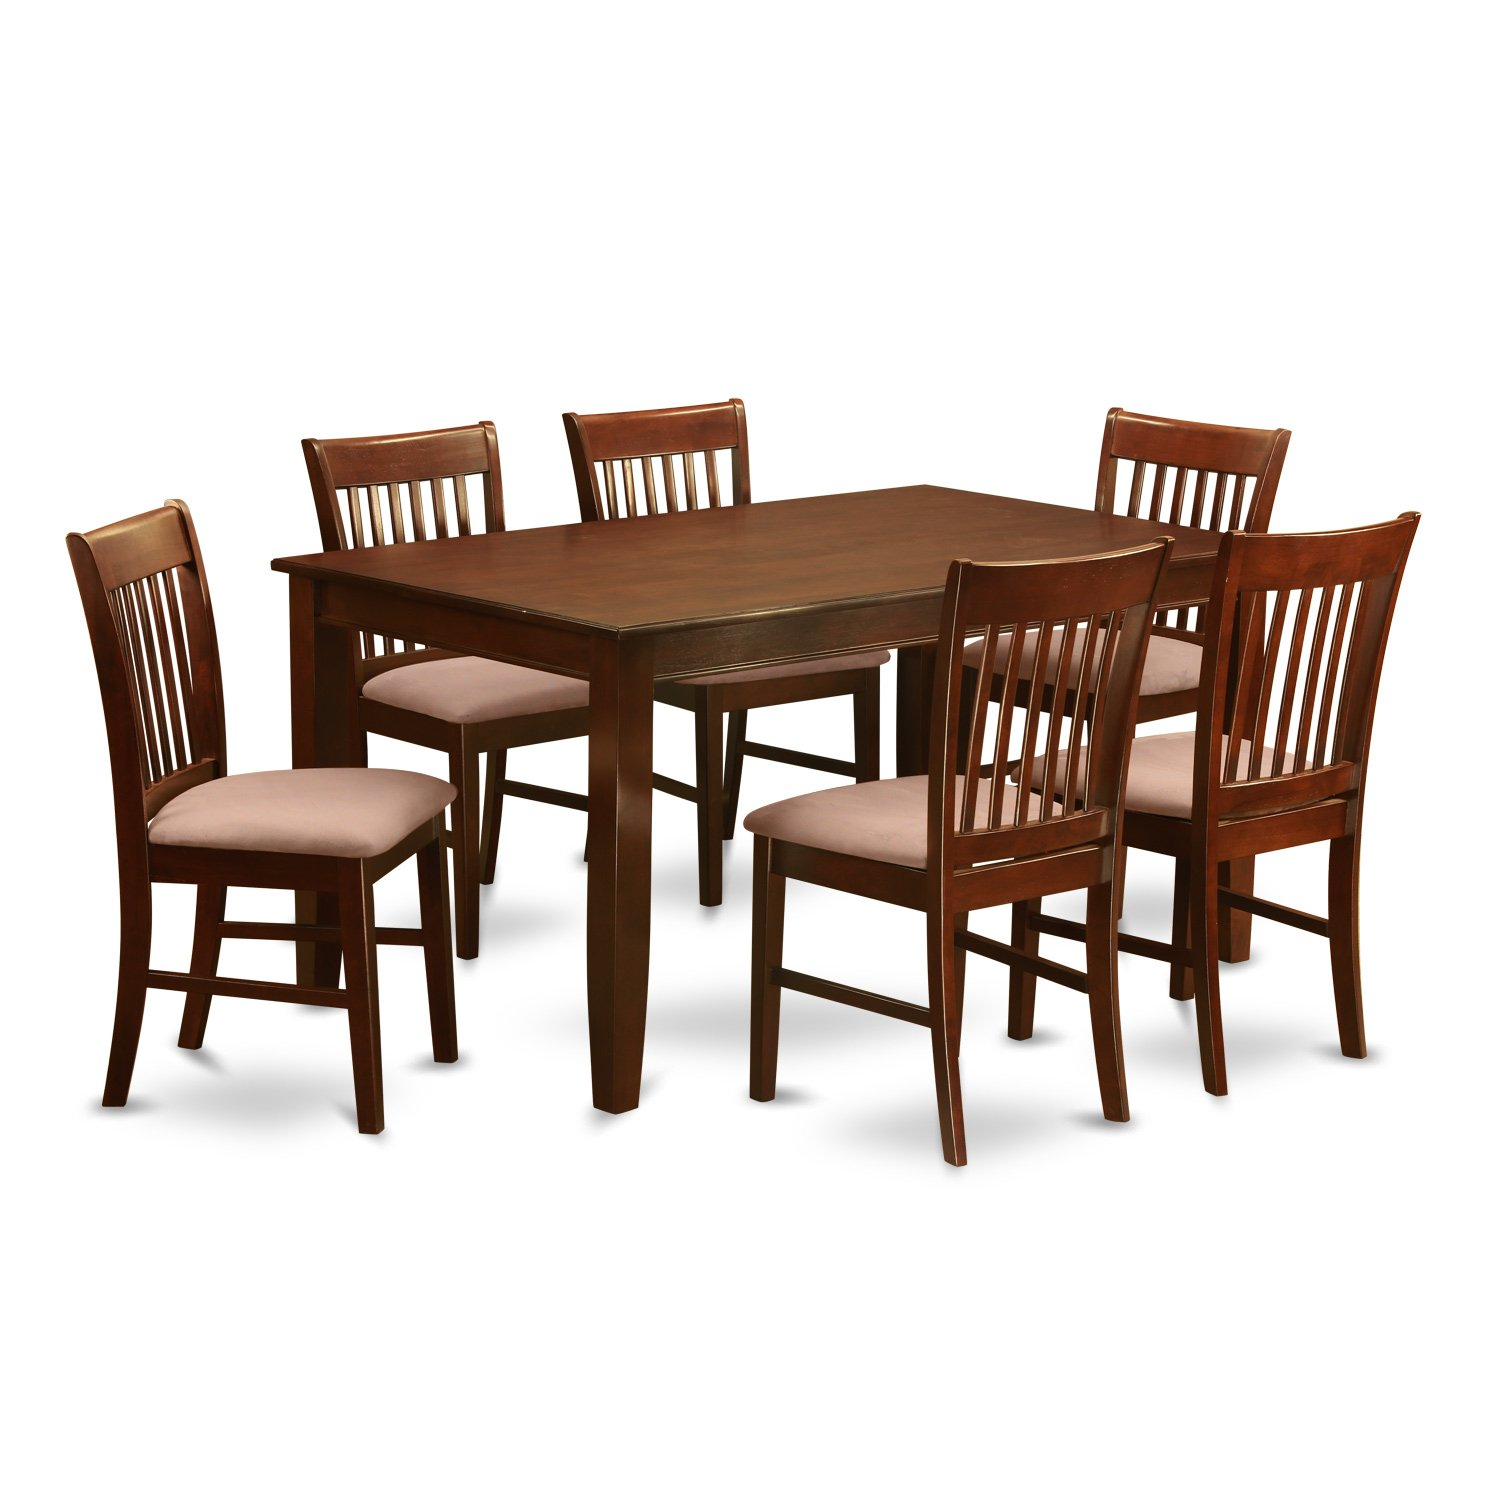 DUNO7-MAH-C 7 PC Dinette Table set for 6-Dinette Table and 6 dinette Chairs